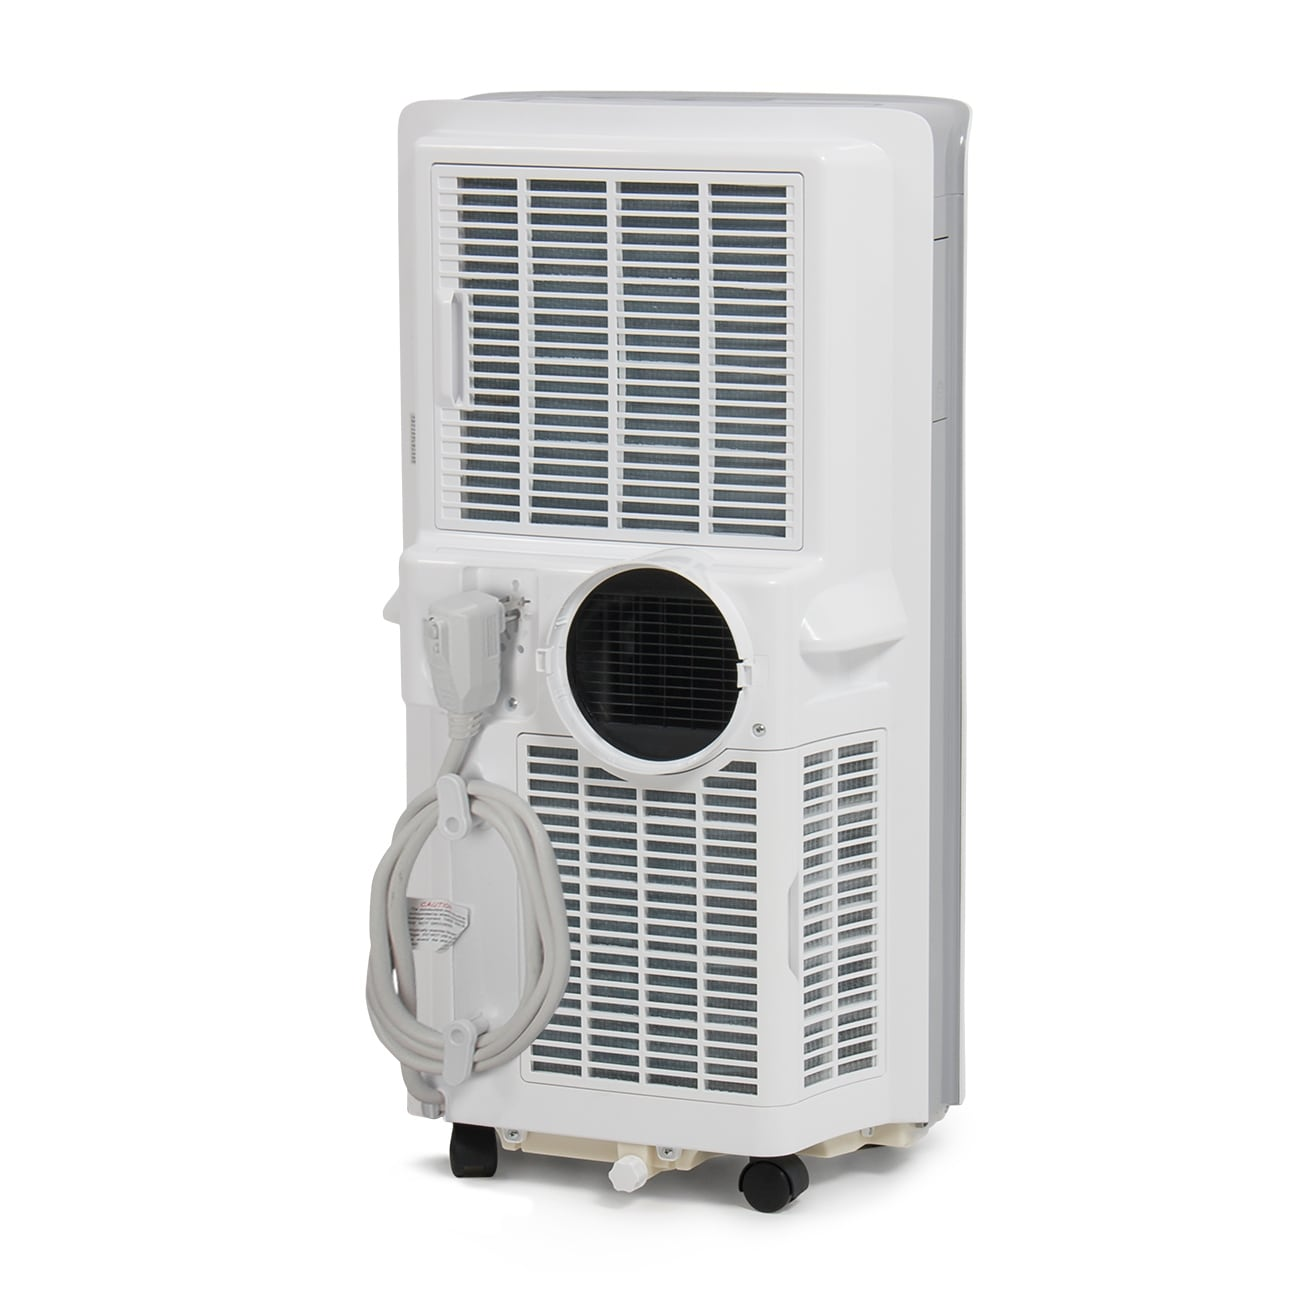 shop della 14000 btu evaporative portable air conditioner heater dehumidifier cooling function led panel control free shipping today - Air Conditioner And Heater